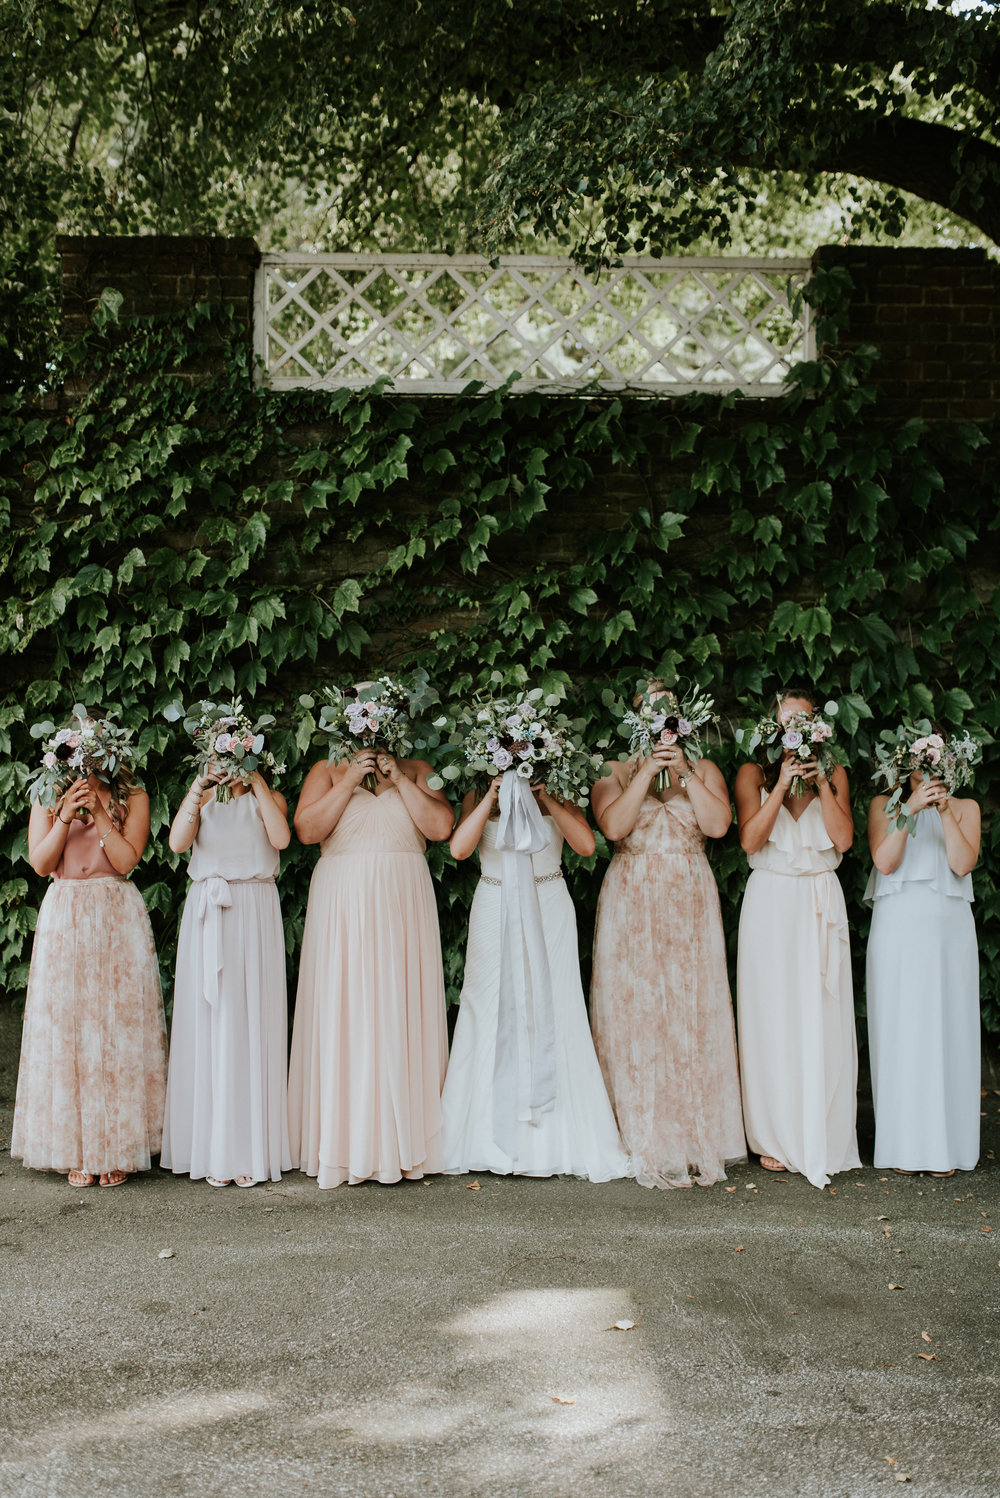 Rustic Oyster Themed Eastern Shore Maryland Outdoor Wedding by East Made Event Company Wedding Planner and Bekah Kay Creative416.jpg